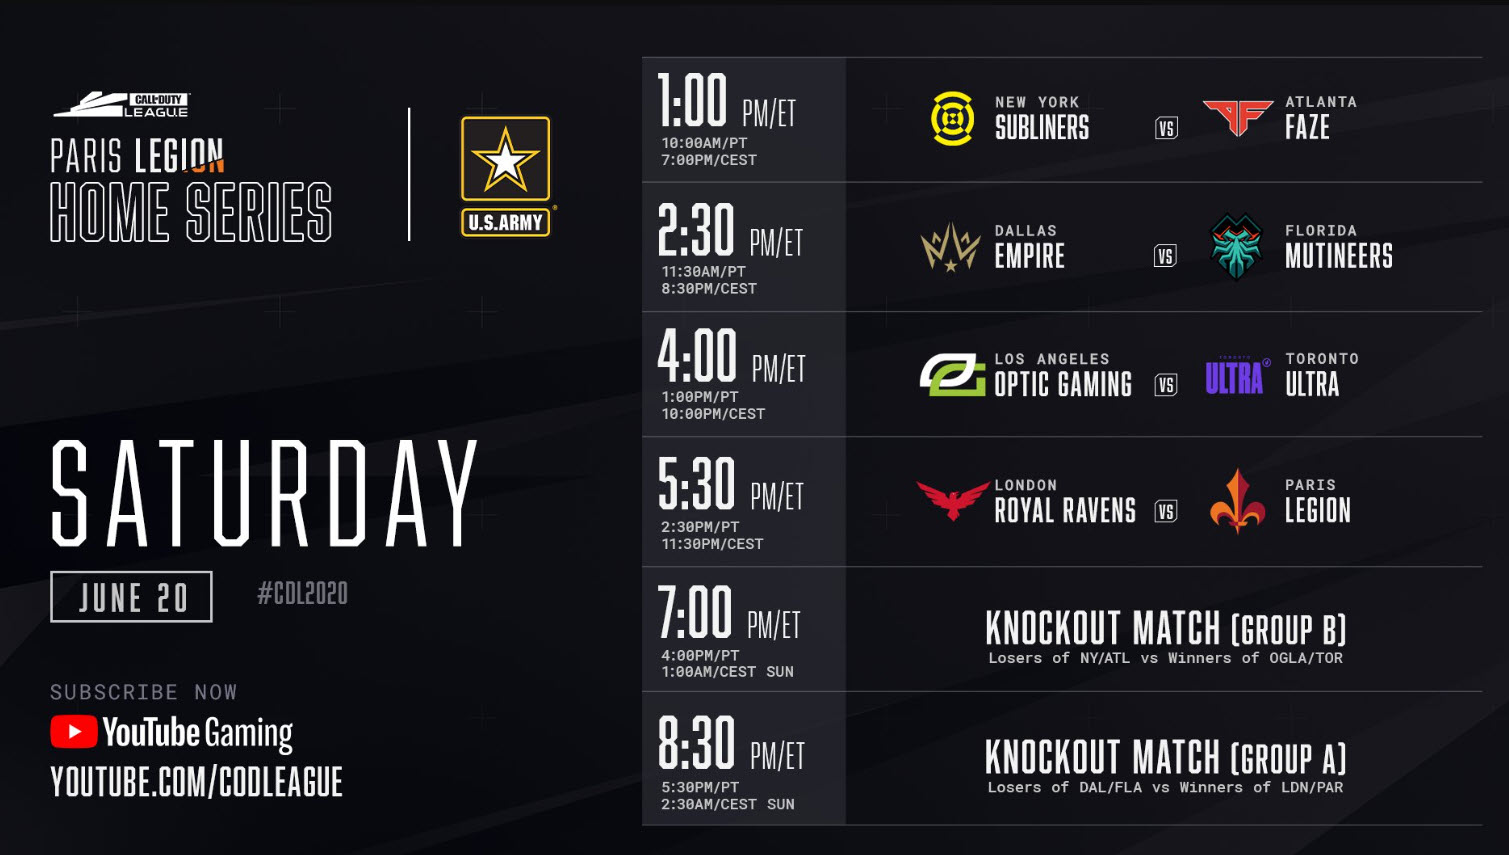 Schedule for Day 2 CDL Paris Legion Home Series